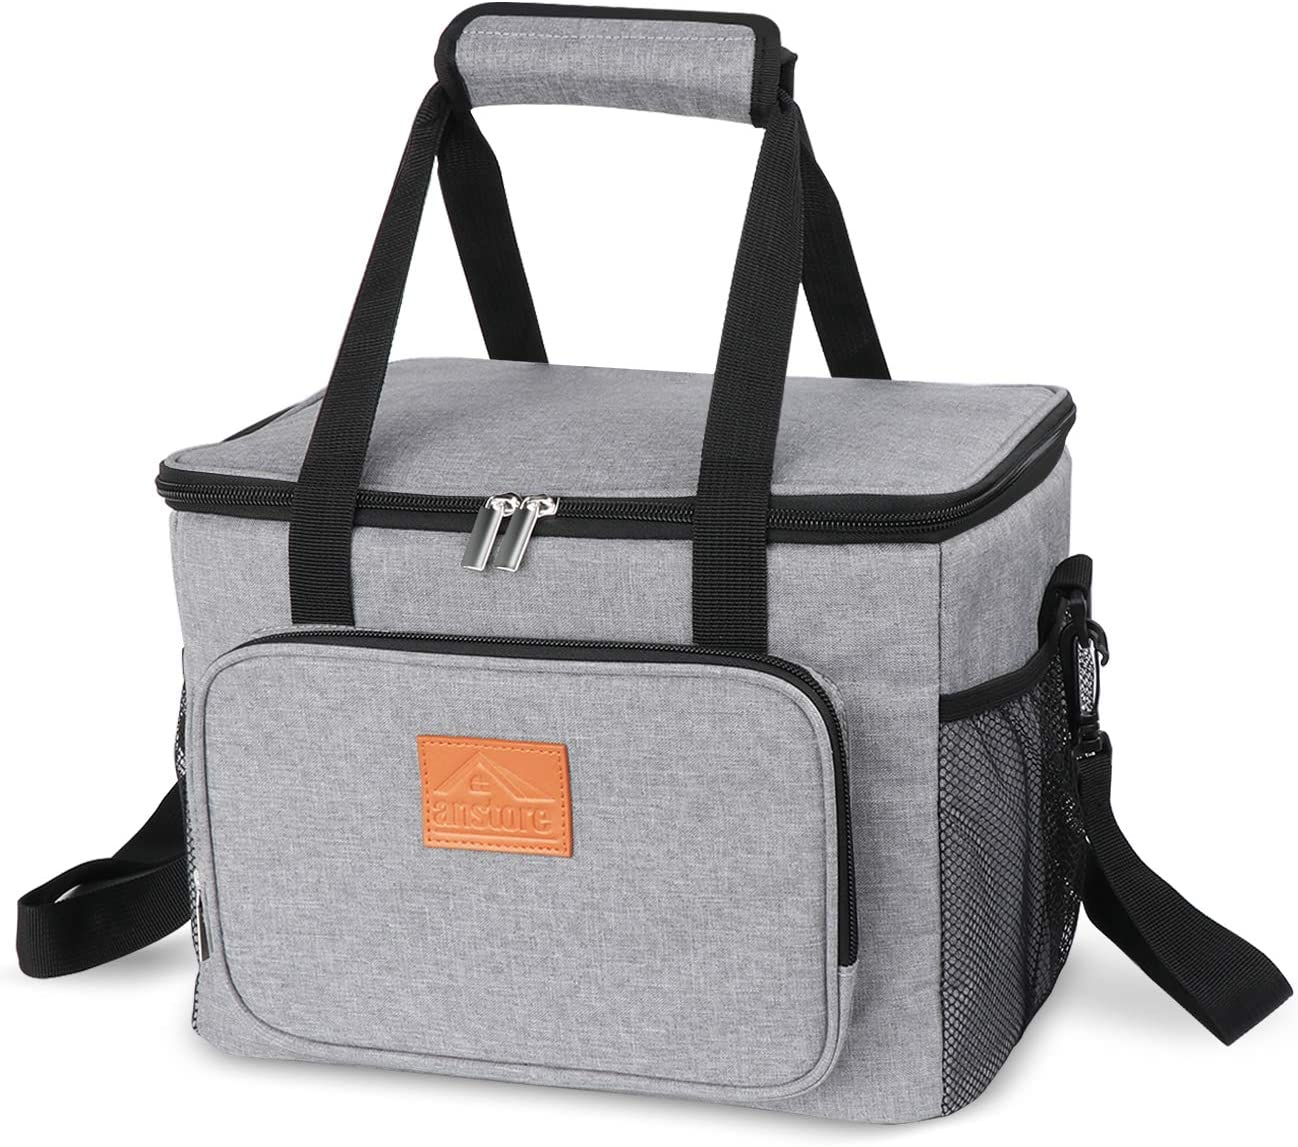 Lemonfilter Insulated Lunch Bag for Women & Men, Leakproof Thermal Reusable Lunch Box for School Office Picnic Hiking Beach Lunch Bag Cooler with Adjustable Shoulder Strap (Grey)